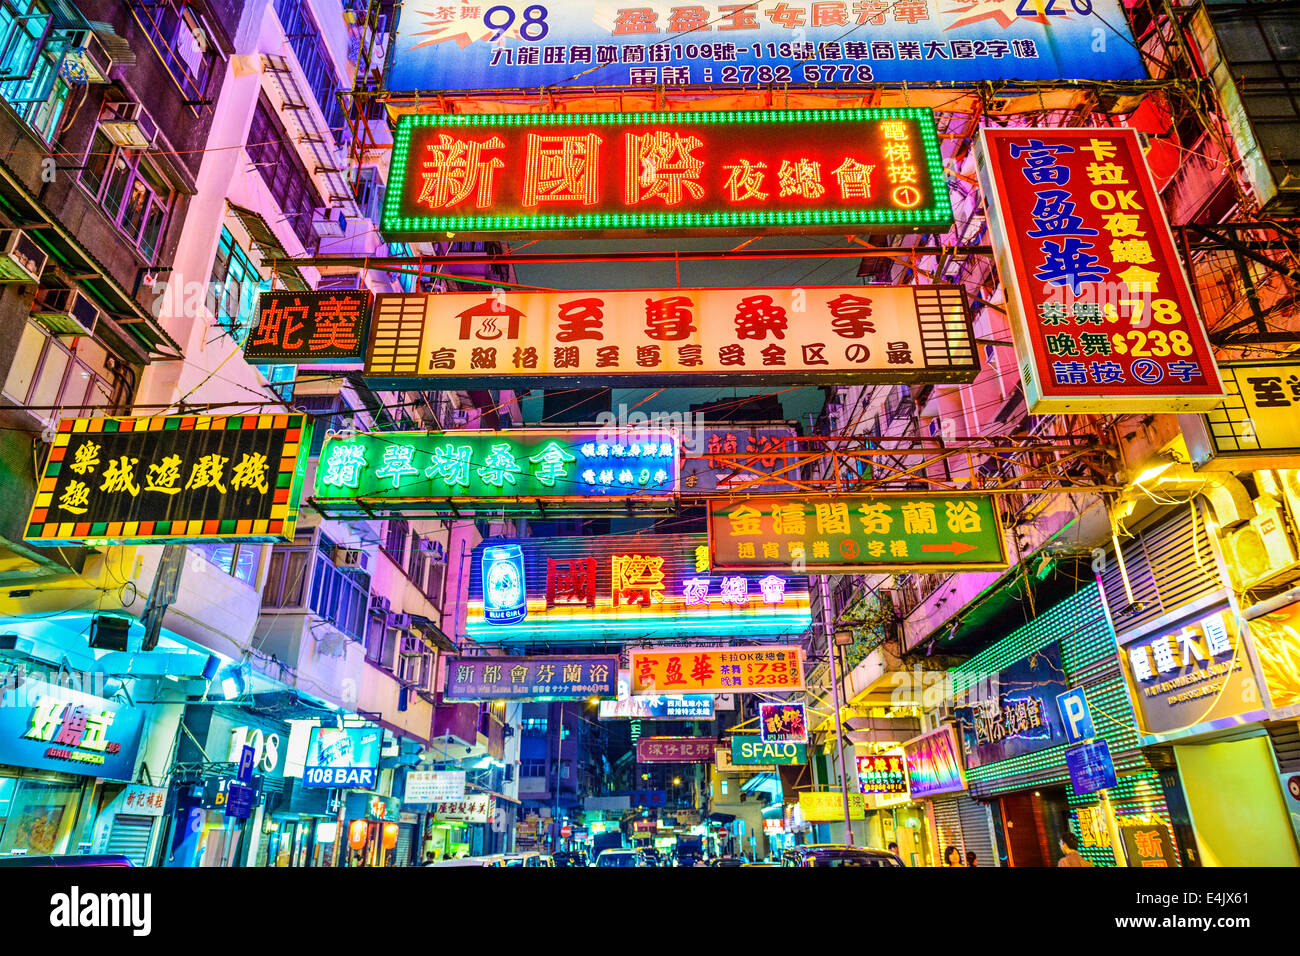 HONG KONG, CHINA - MAY 16, 2014: Signs illuminate the night in Kowloon. Hong Kong is well known for the myriad of - Stock Image